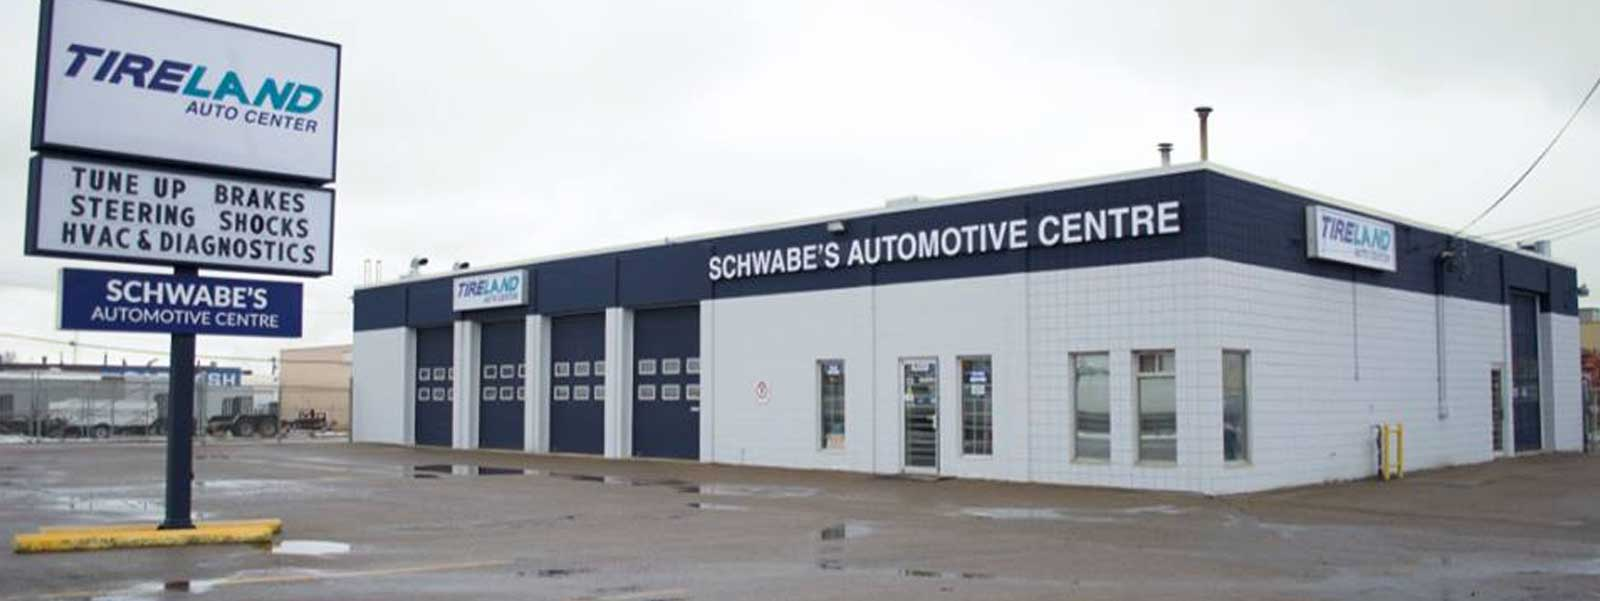 Auto Service Center in Edmonton - Schwabe's Automotive Center